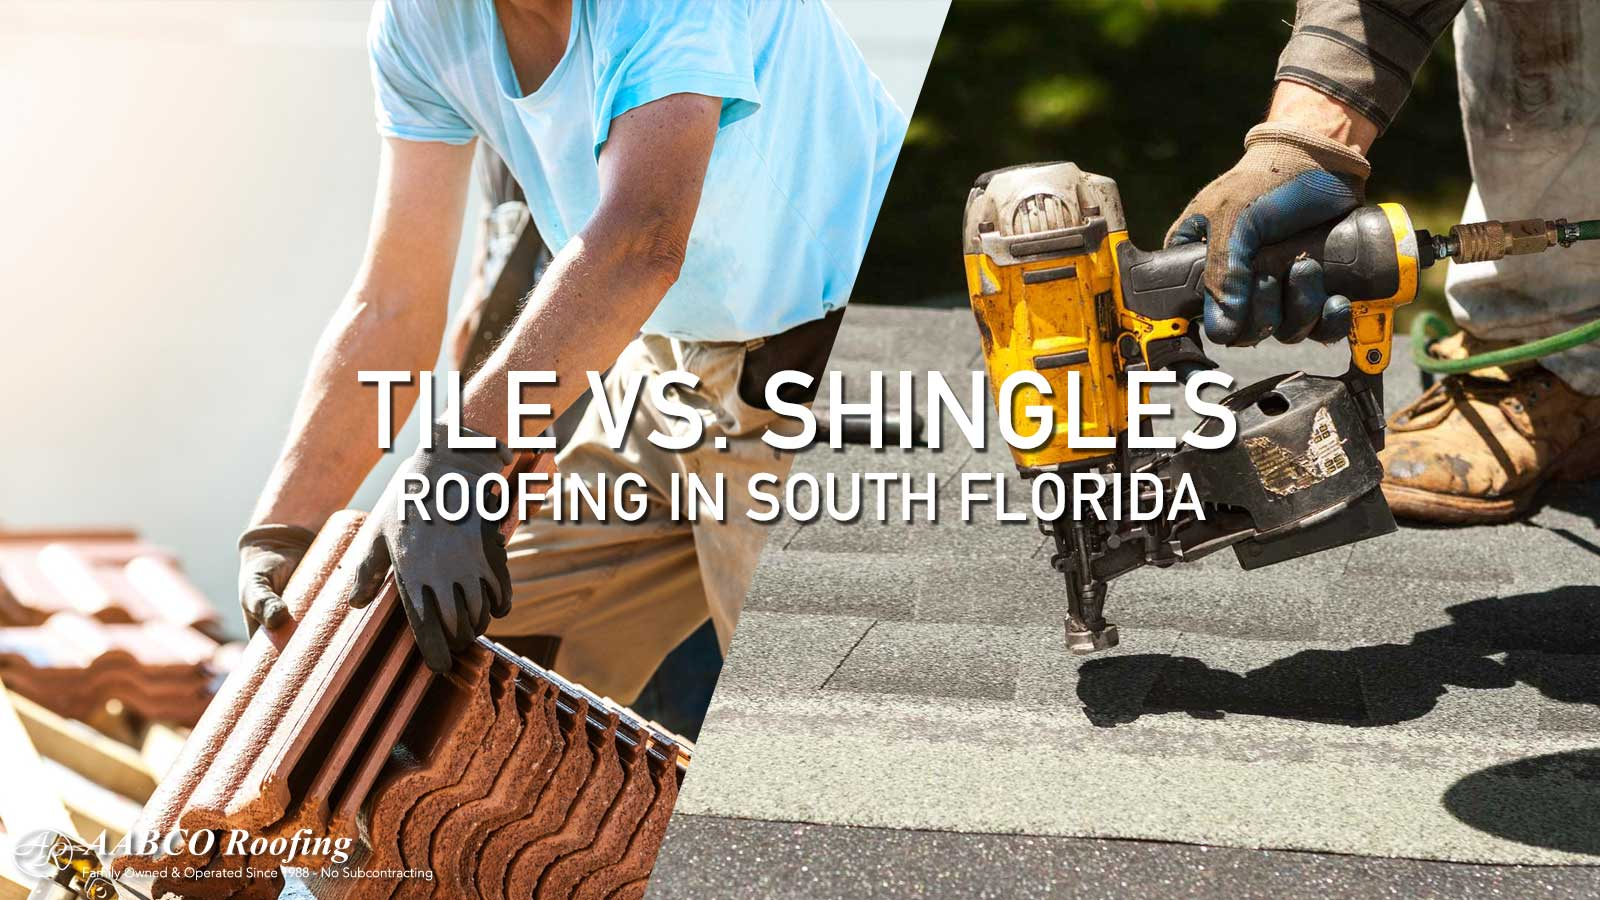 Tile vs. Shingles